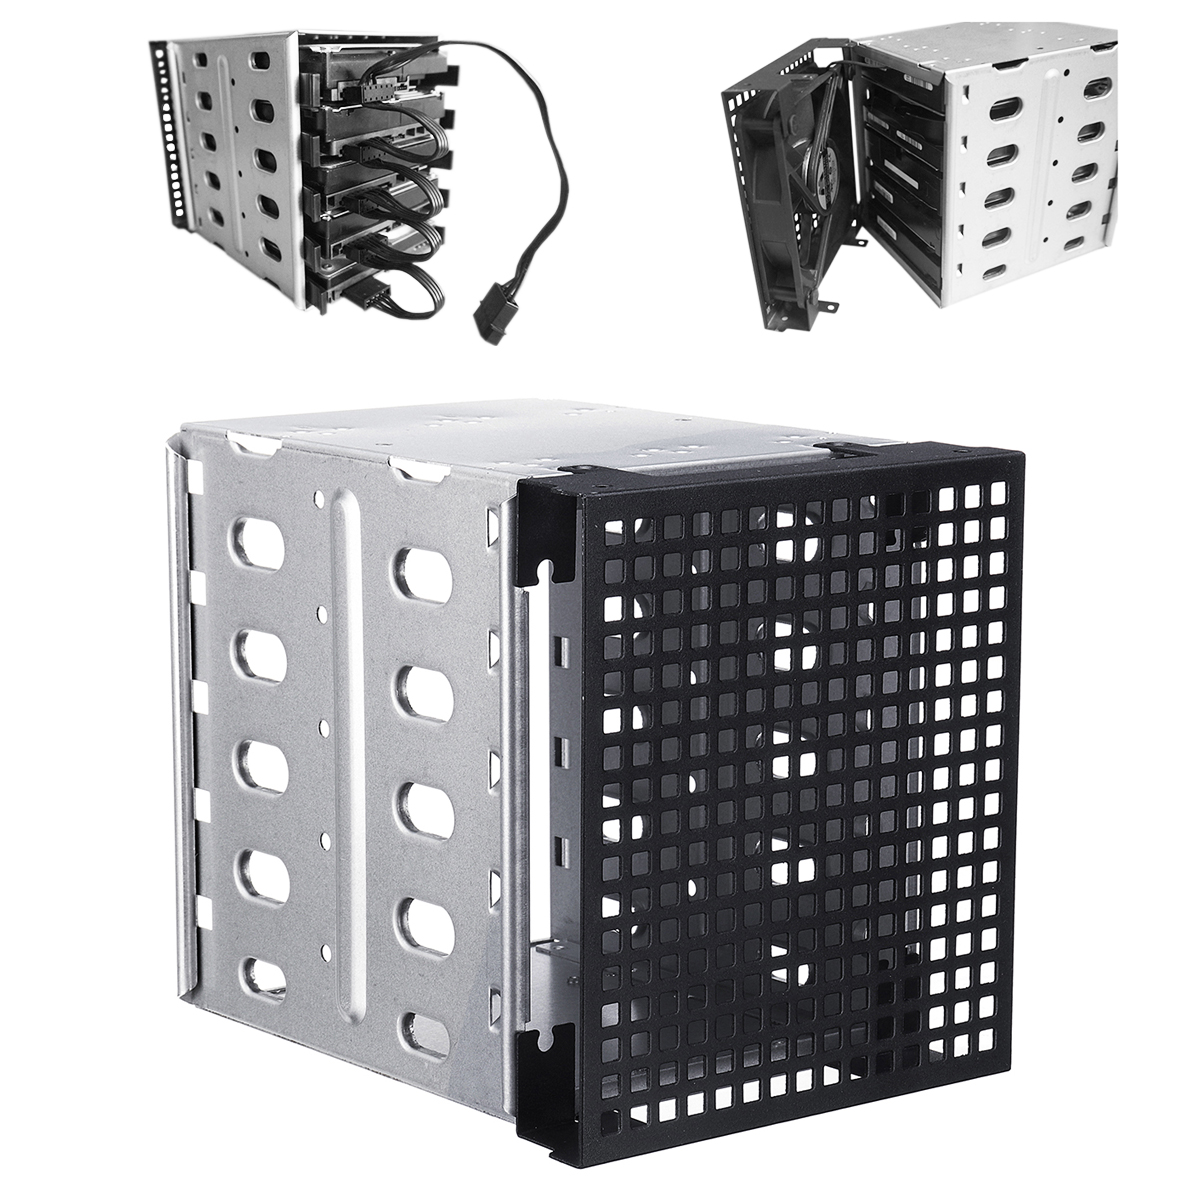 NEW 5.25 to 5x 3.5 SATA SAS HDD Cage Rack Hard Drive Tray Caddy Converter with Fan Space 5 25 to 3 5 sata sas hdd hard drive cage adapter tray caddy rack bracket for 3x 5 25 cd rom slot internal or external pc diy